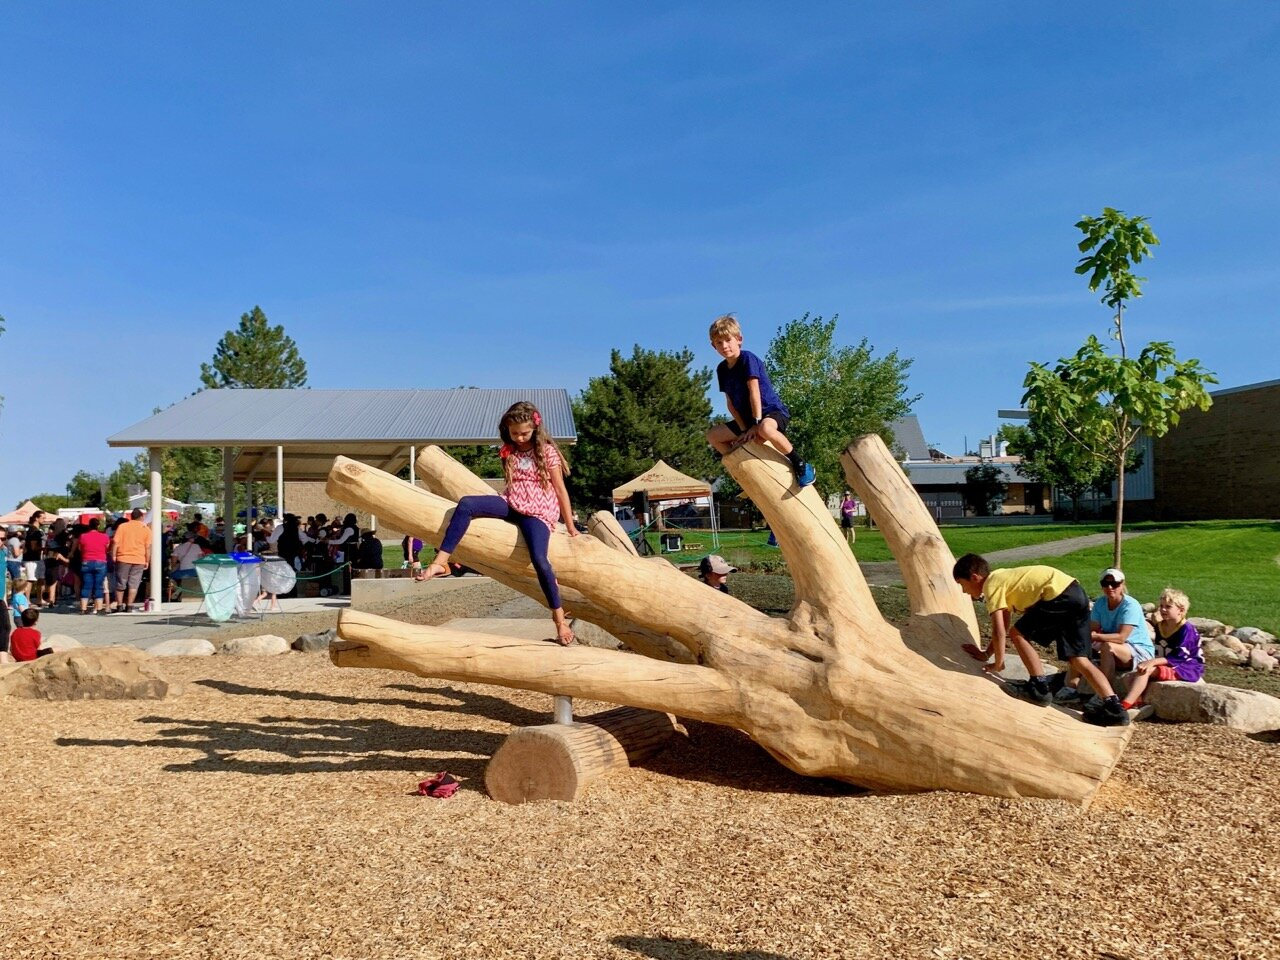 Kids p[aying on tree log at Nature Discovery Area & Inspire Trail in Lafayette, Colorado